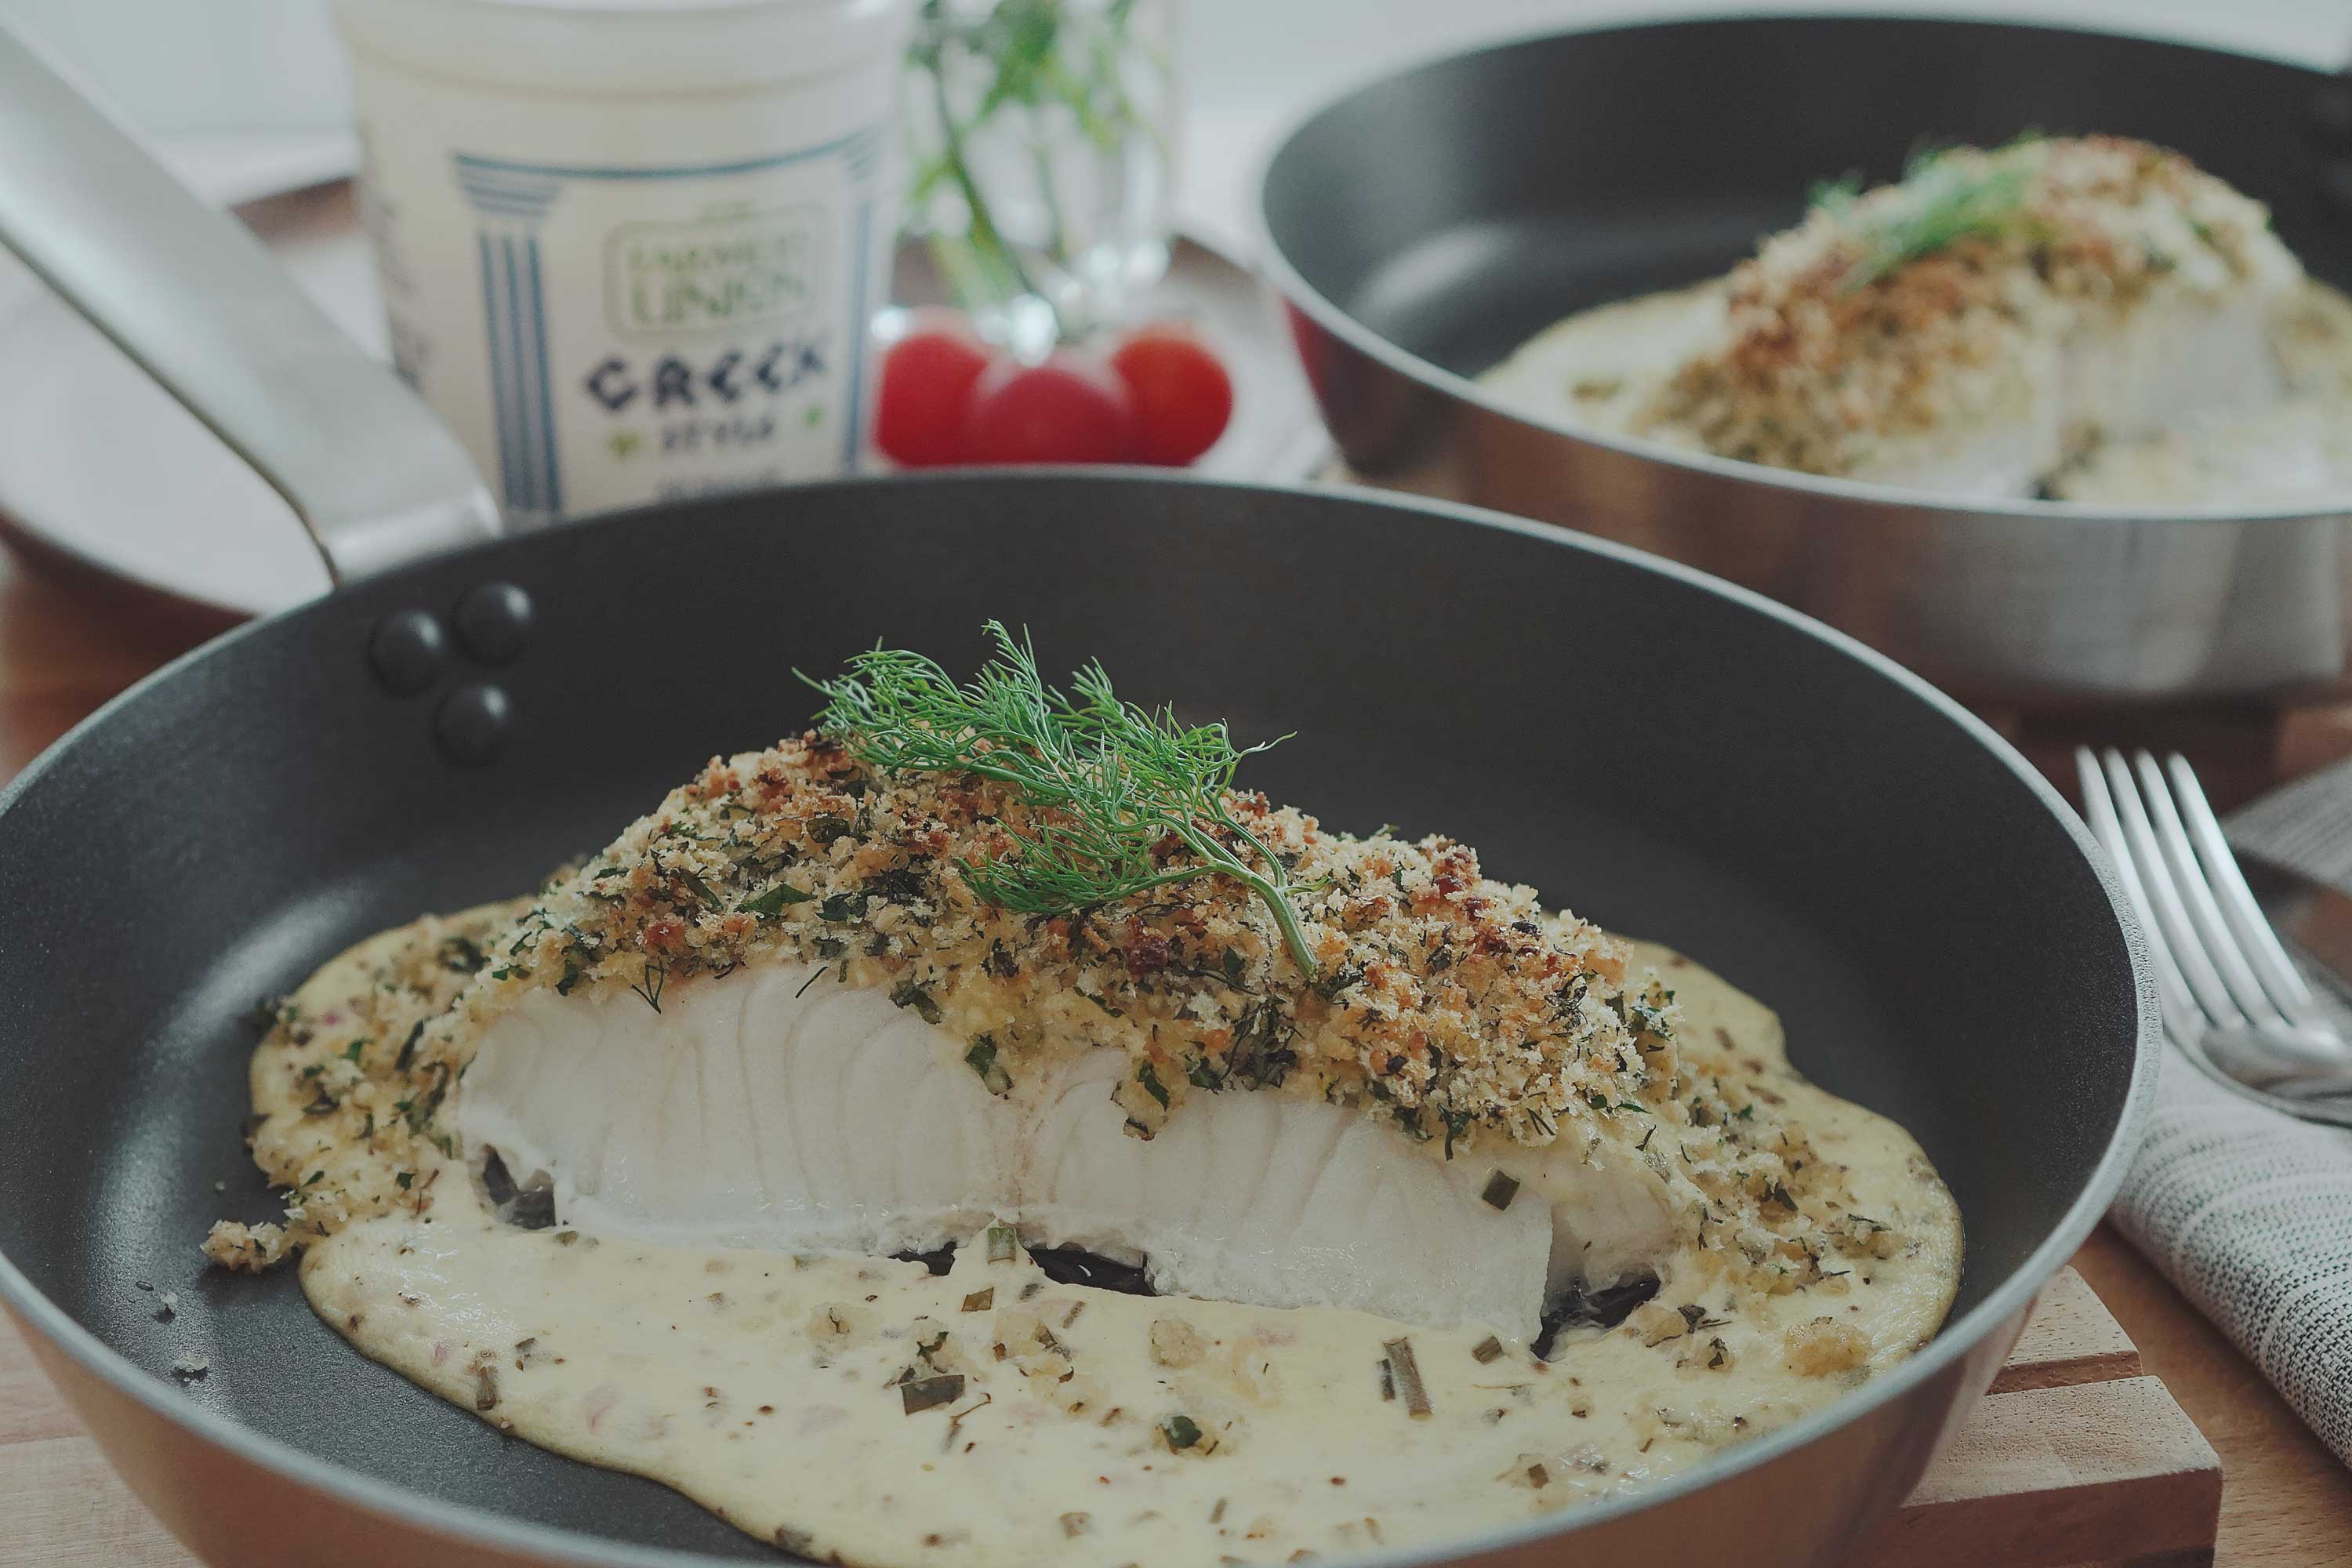 Yogurt Baked Fish With Pine Nut Herbed Crumbs